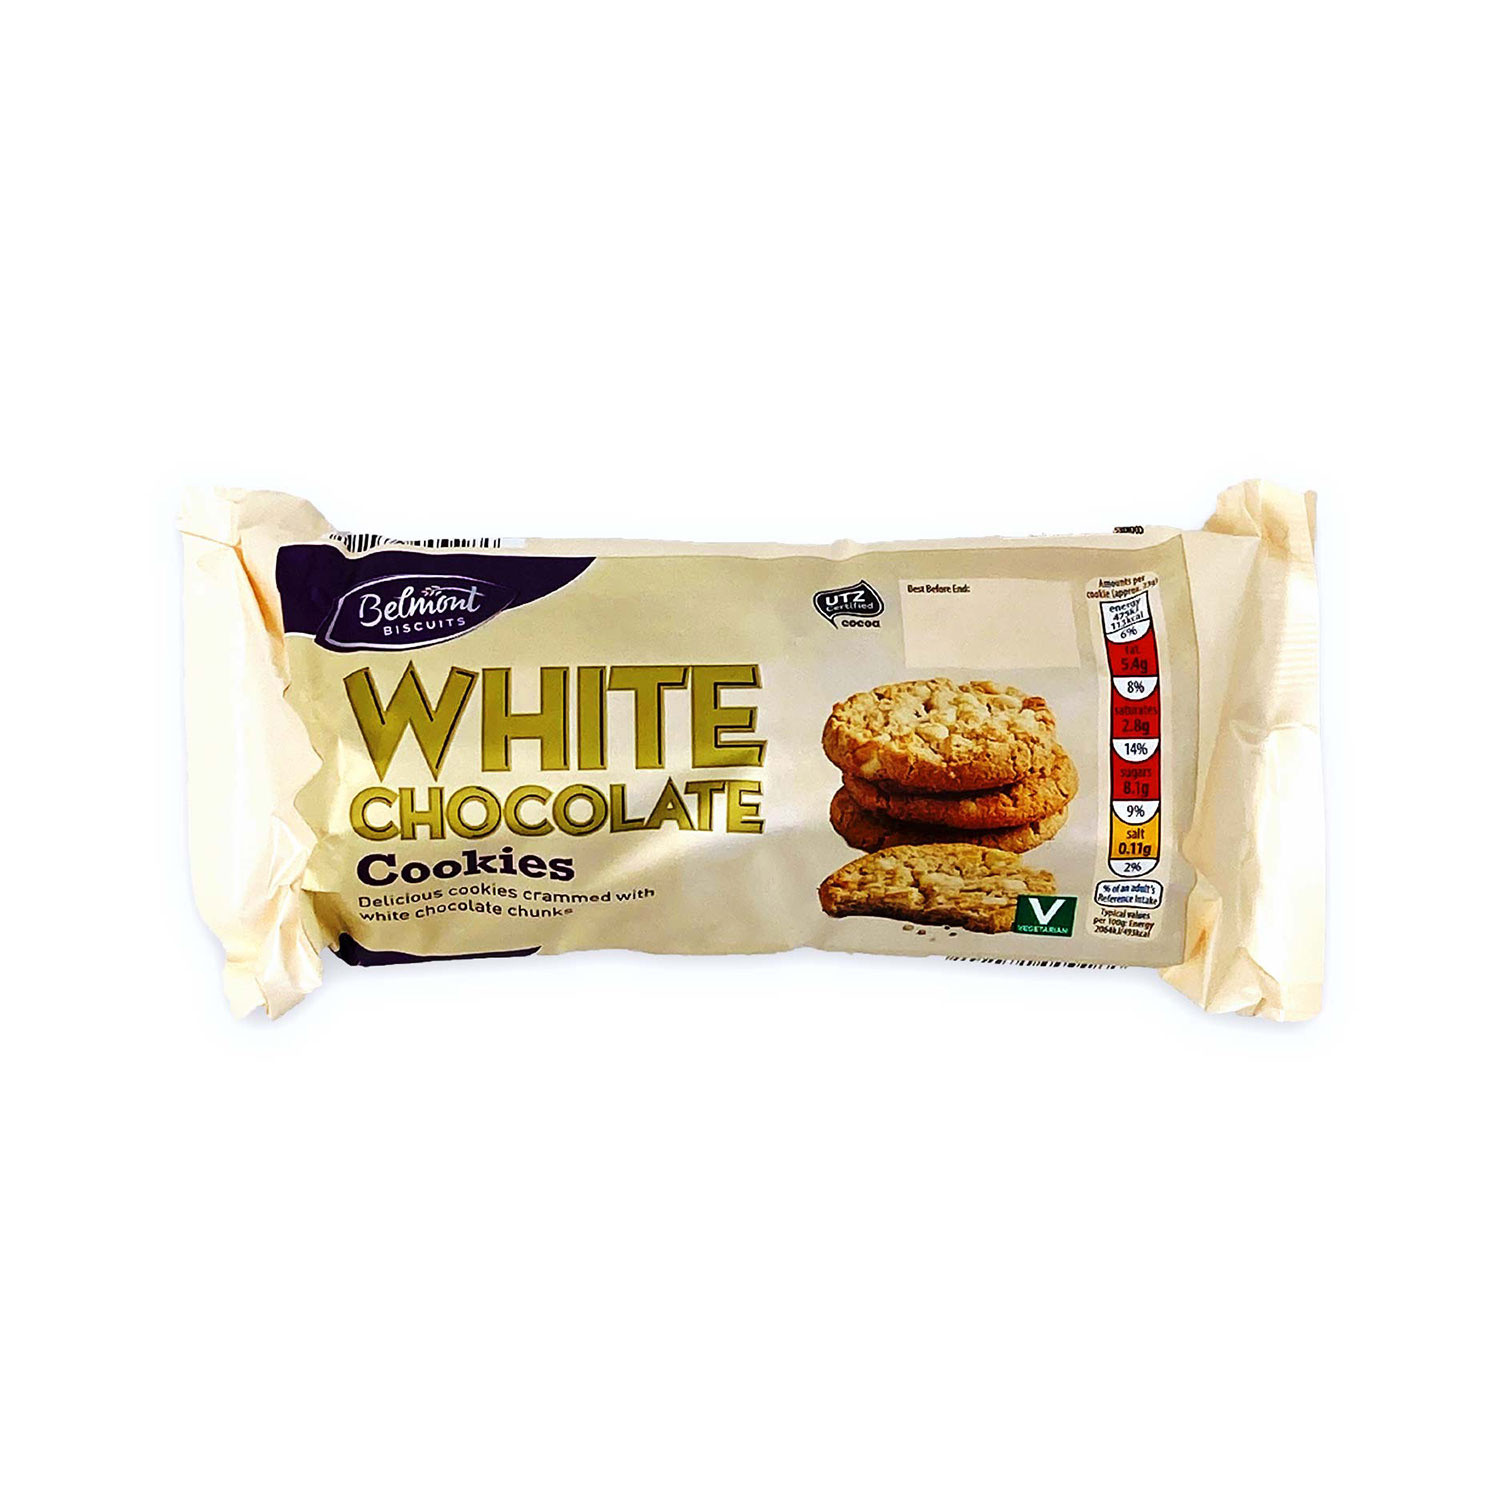 Belmont Cookies White Chocolate